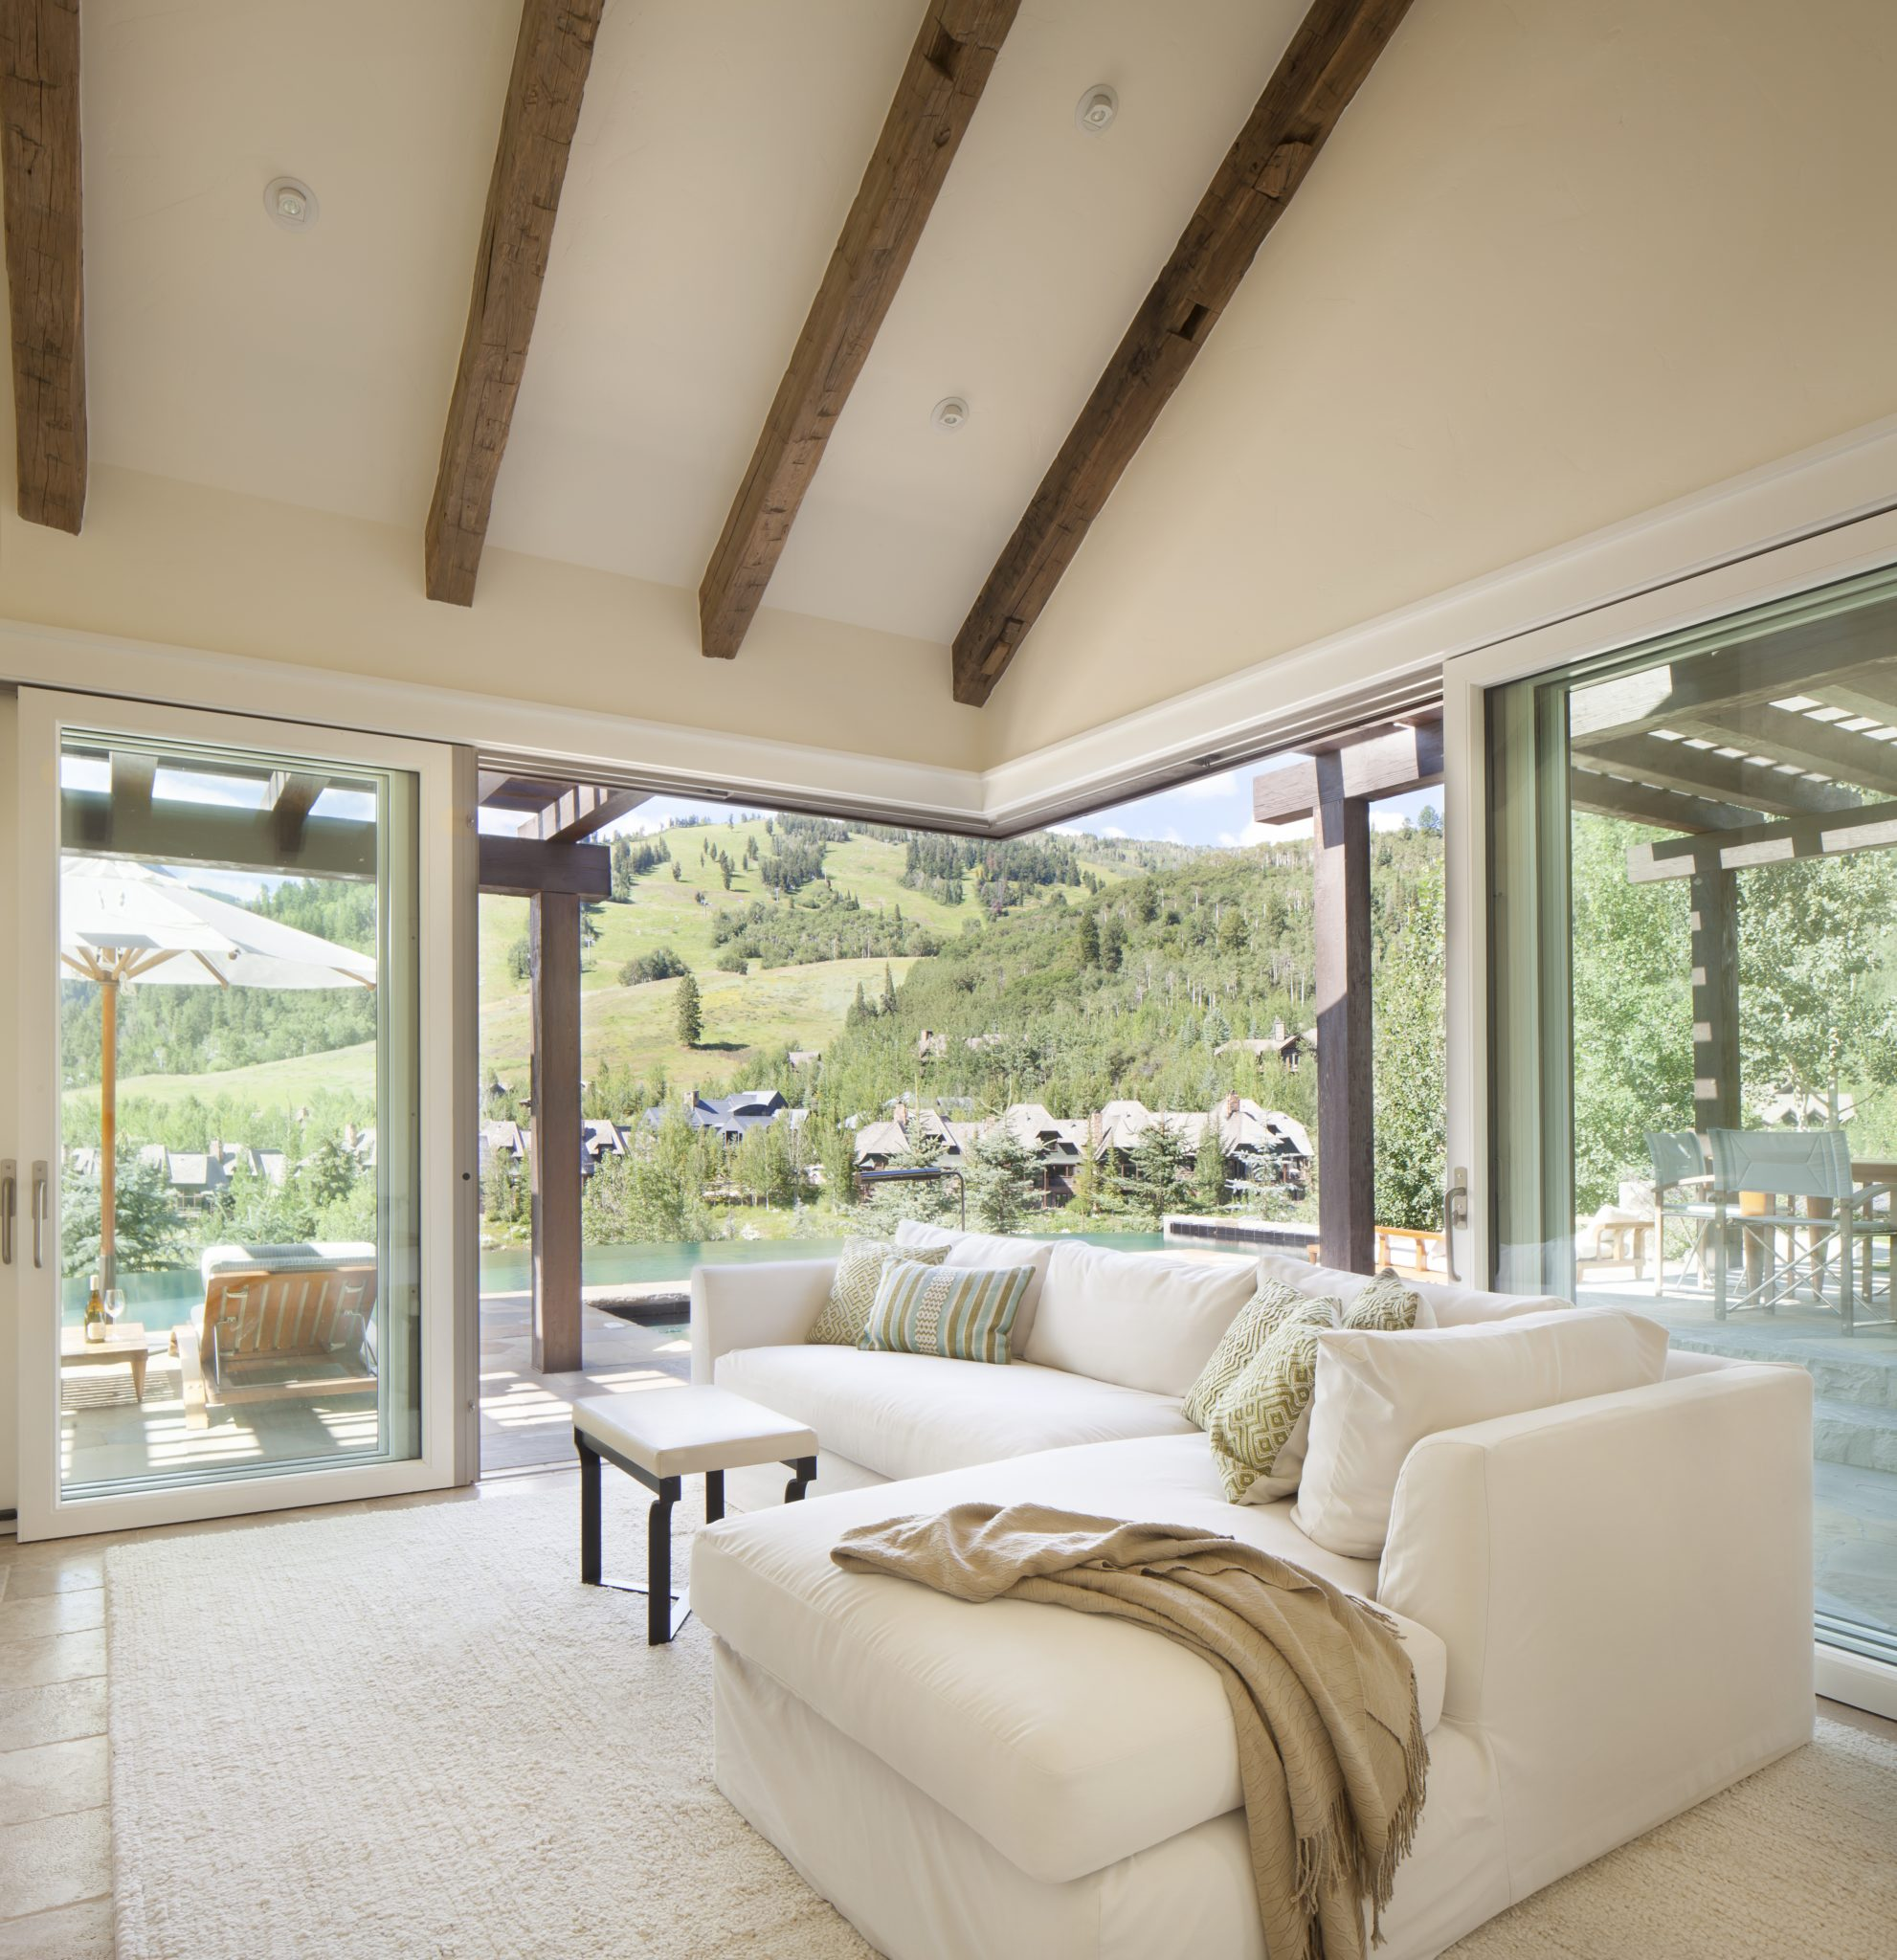 Large sliding glass doors brings the outside in by Brewster McLeod Architects